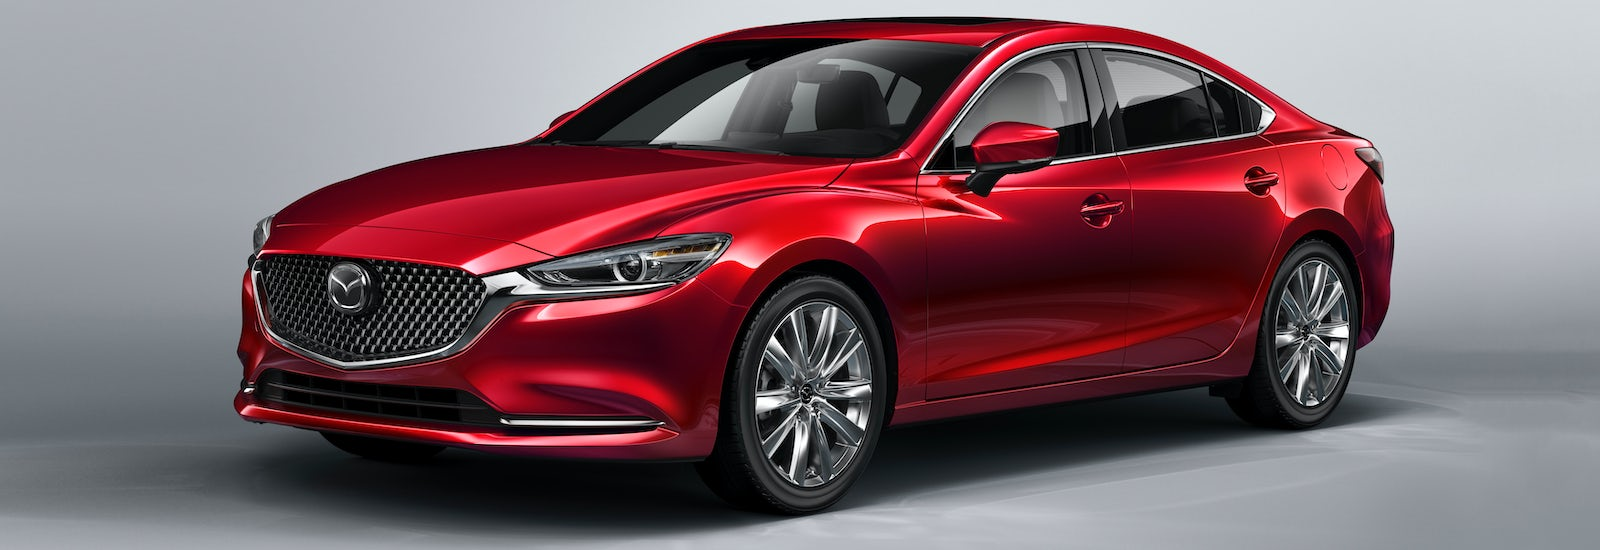 2018 mazda 6 price specs and release date carwow. Black Bedroom Furniture Sets. Home Design Ideas